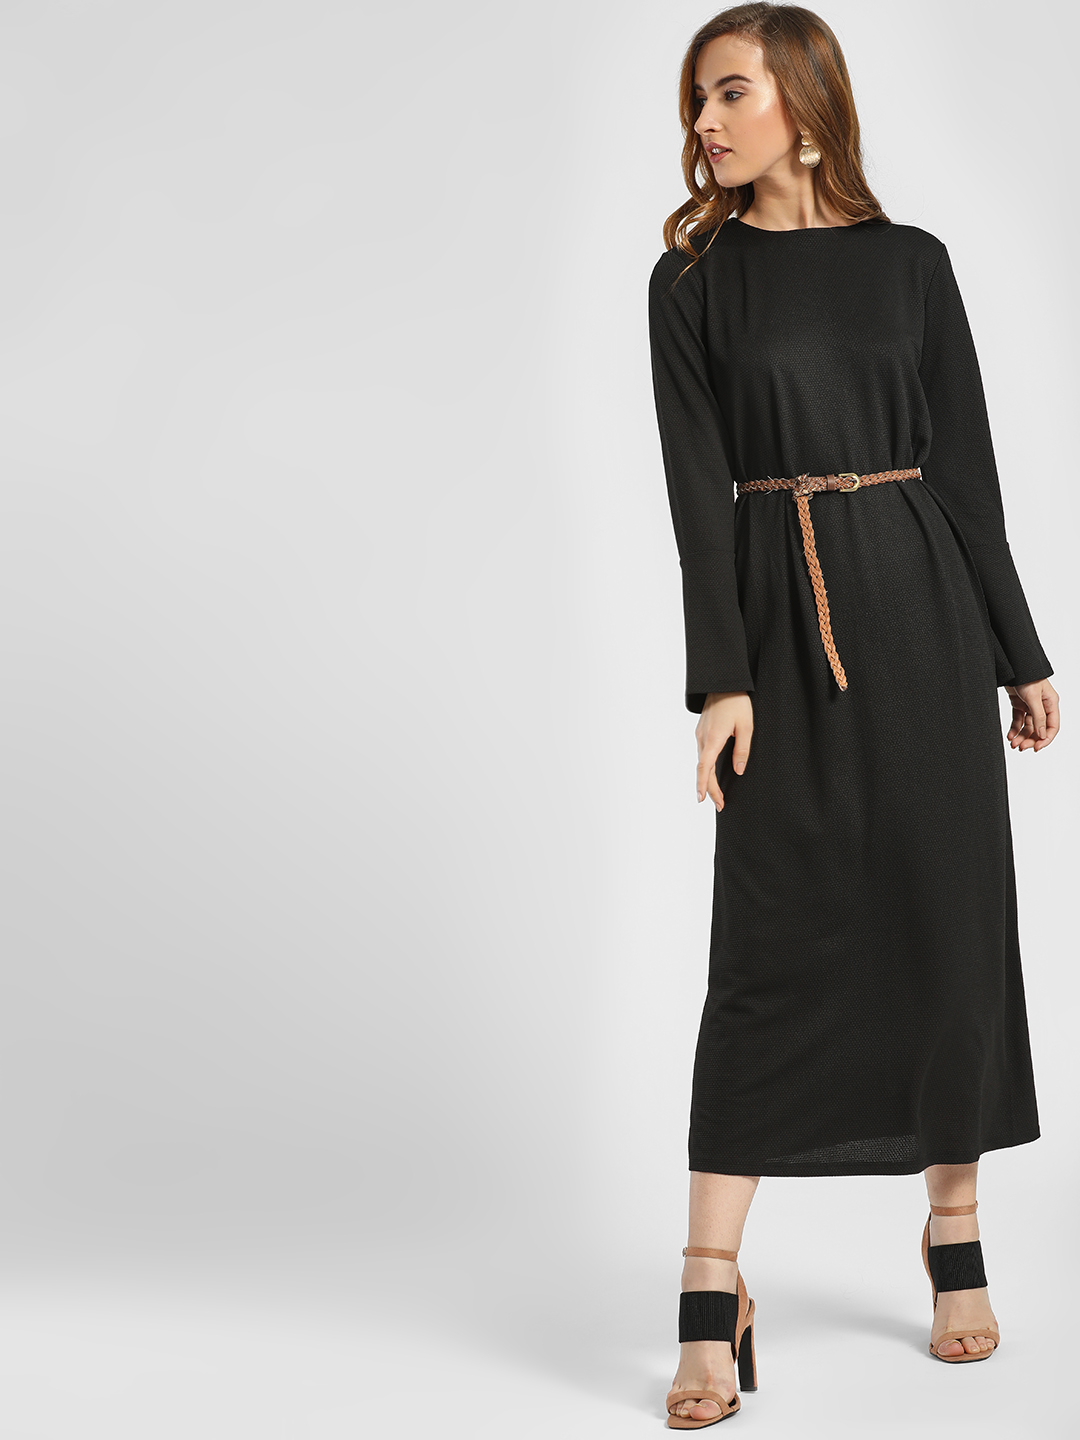 LC Waikiki Black Textured Bell Sleeve Midi Dress 1